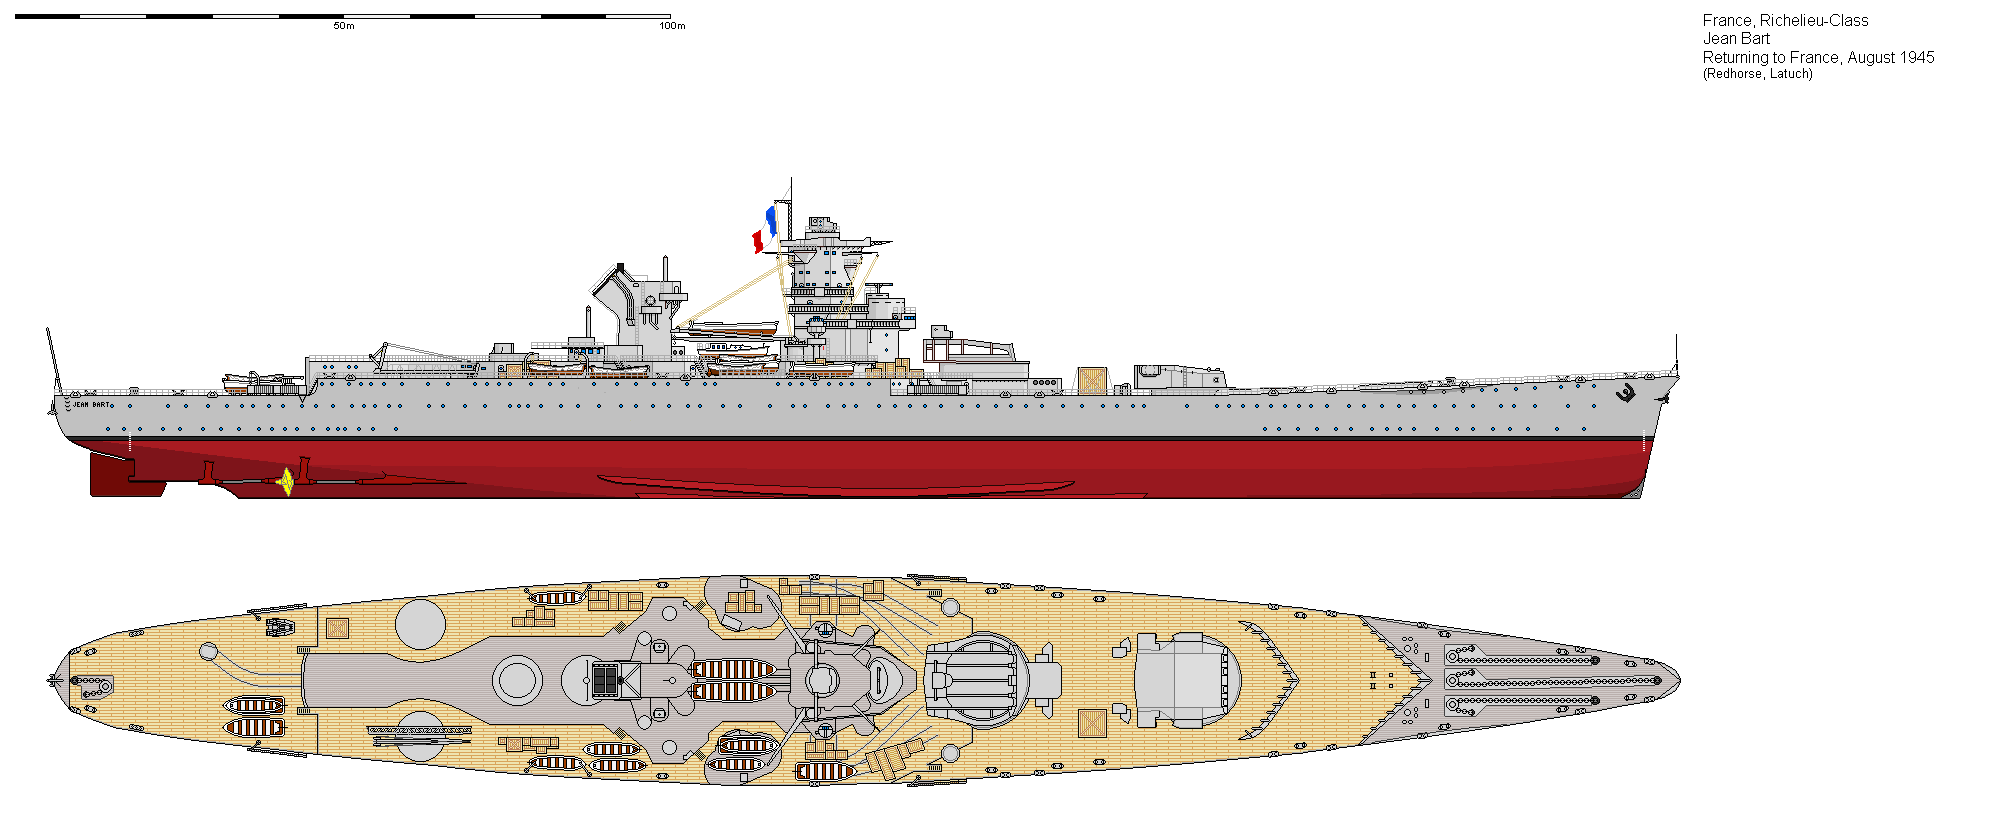 How she looked in 1945 with wartime repairs and no armament fitted via Ship Bucket http://www.shipbucket.com/images.php?dir=Real%20Designs/France/BB%20Jean%20Bart%201945.png click to very much big up